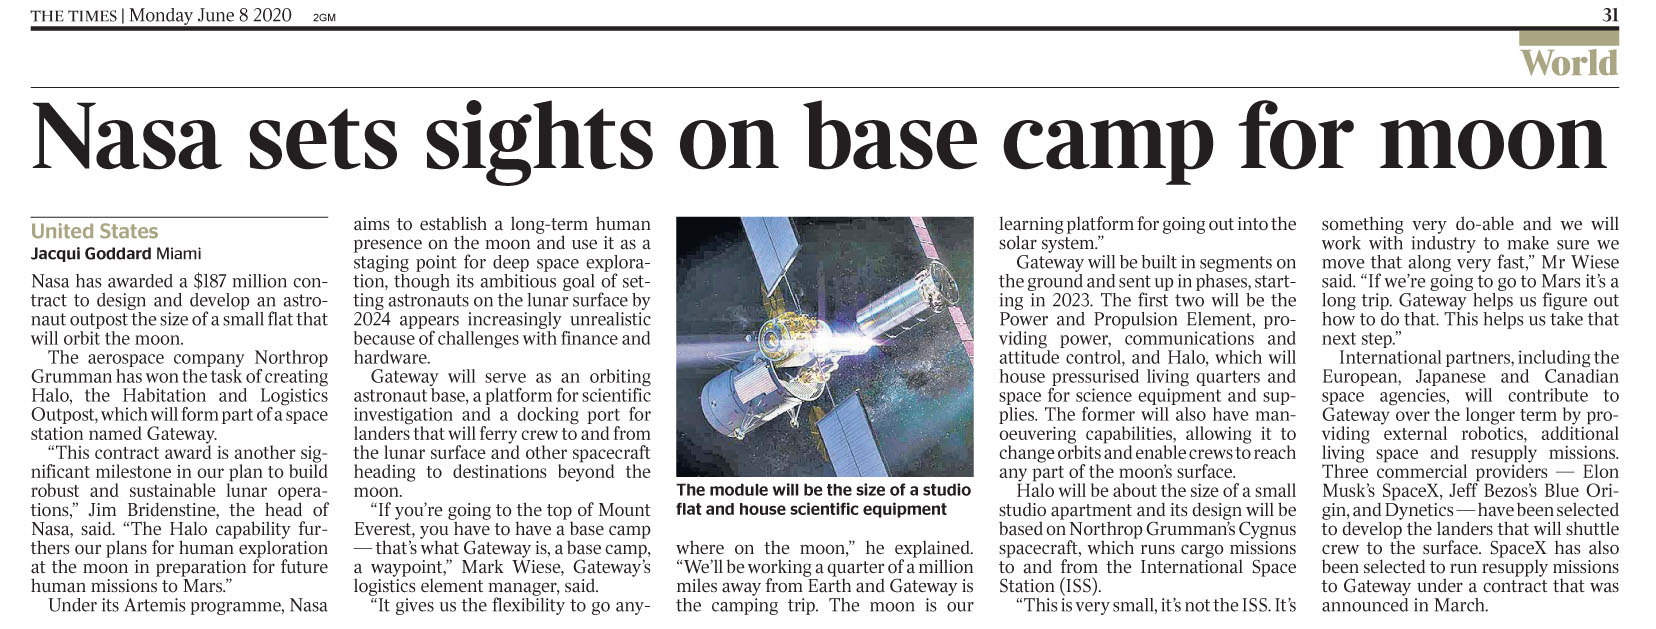 The Times - June 8 2020 Space.jpg